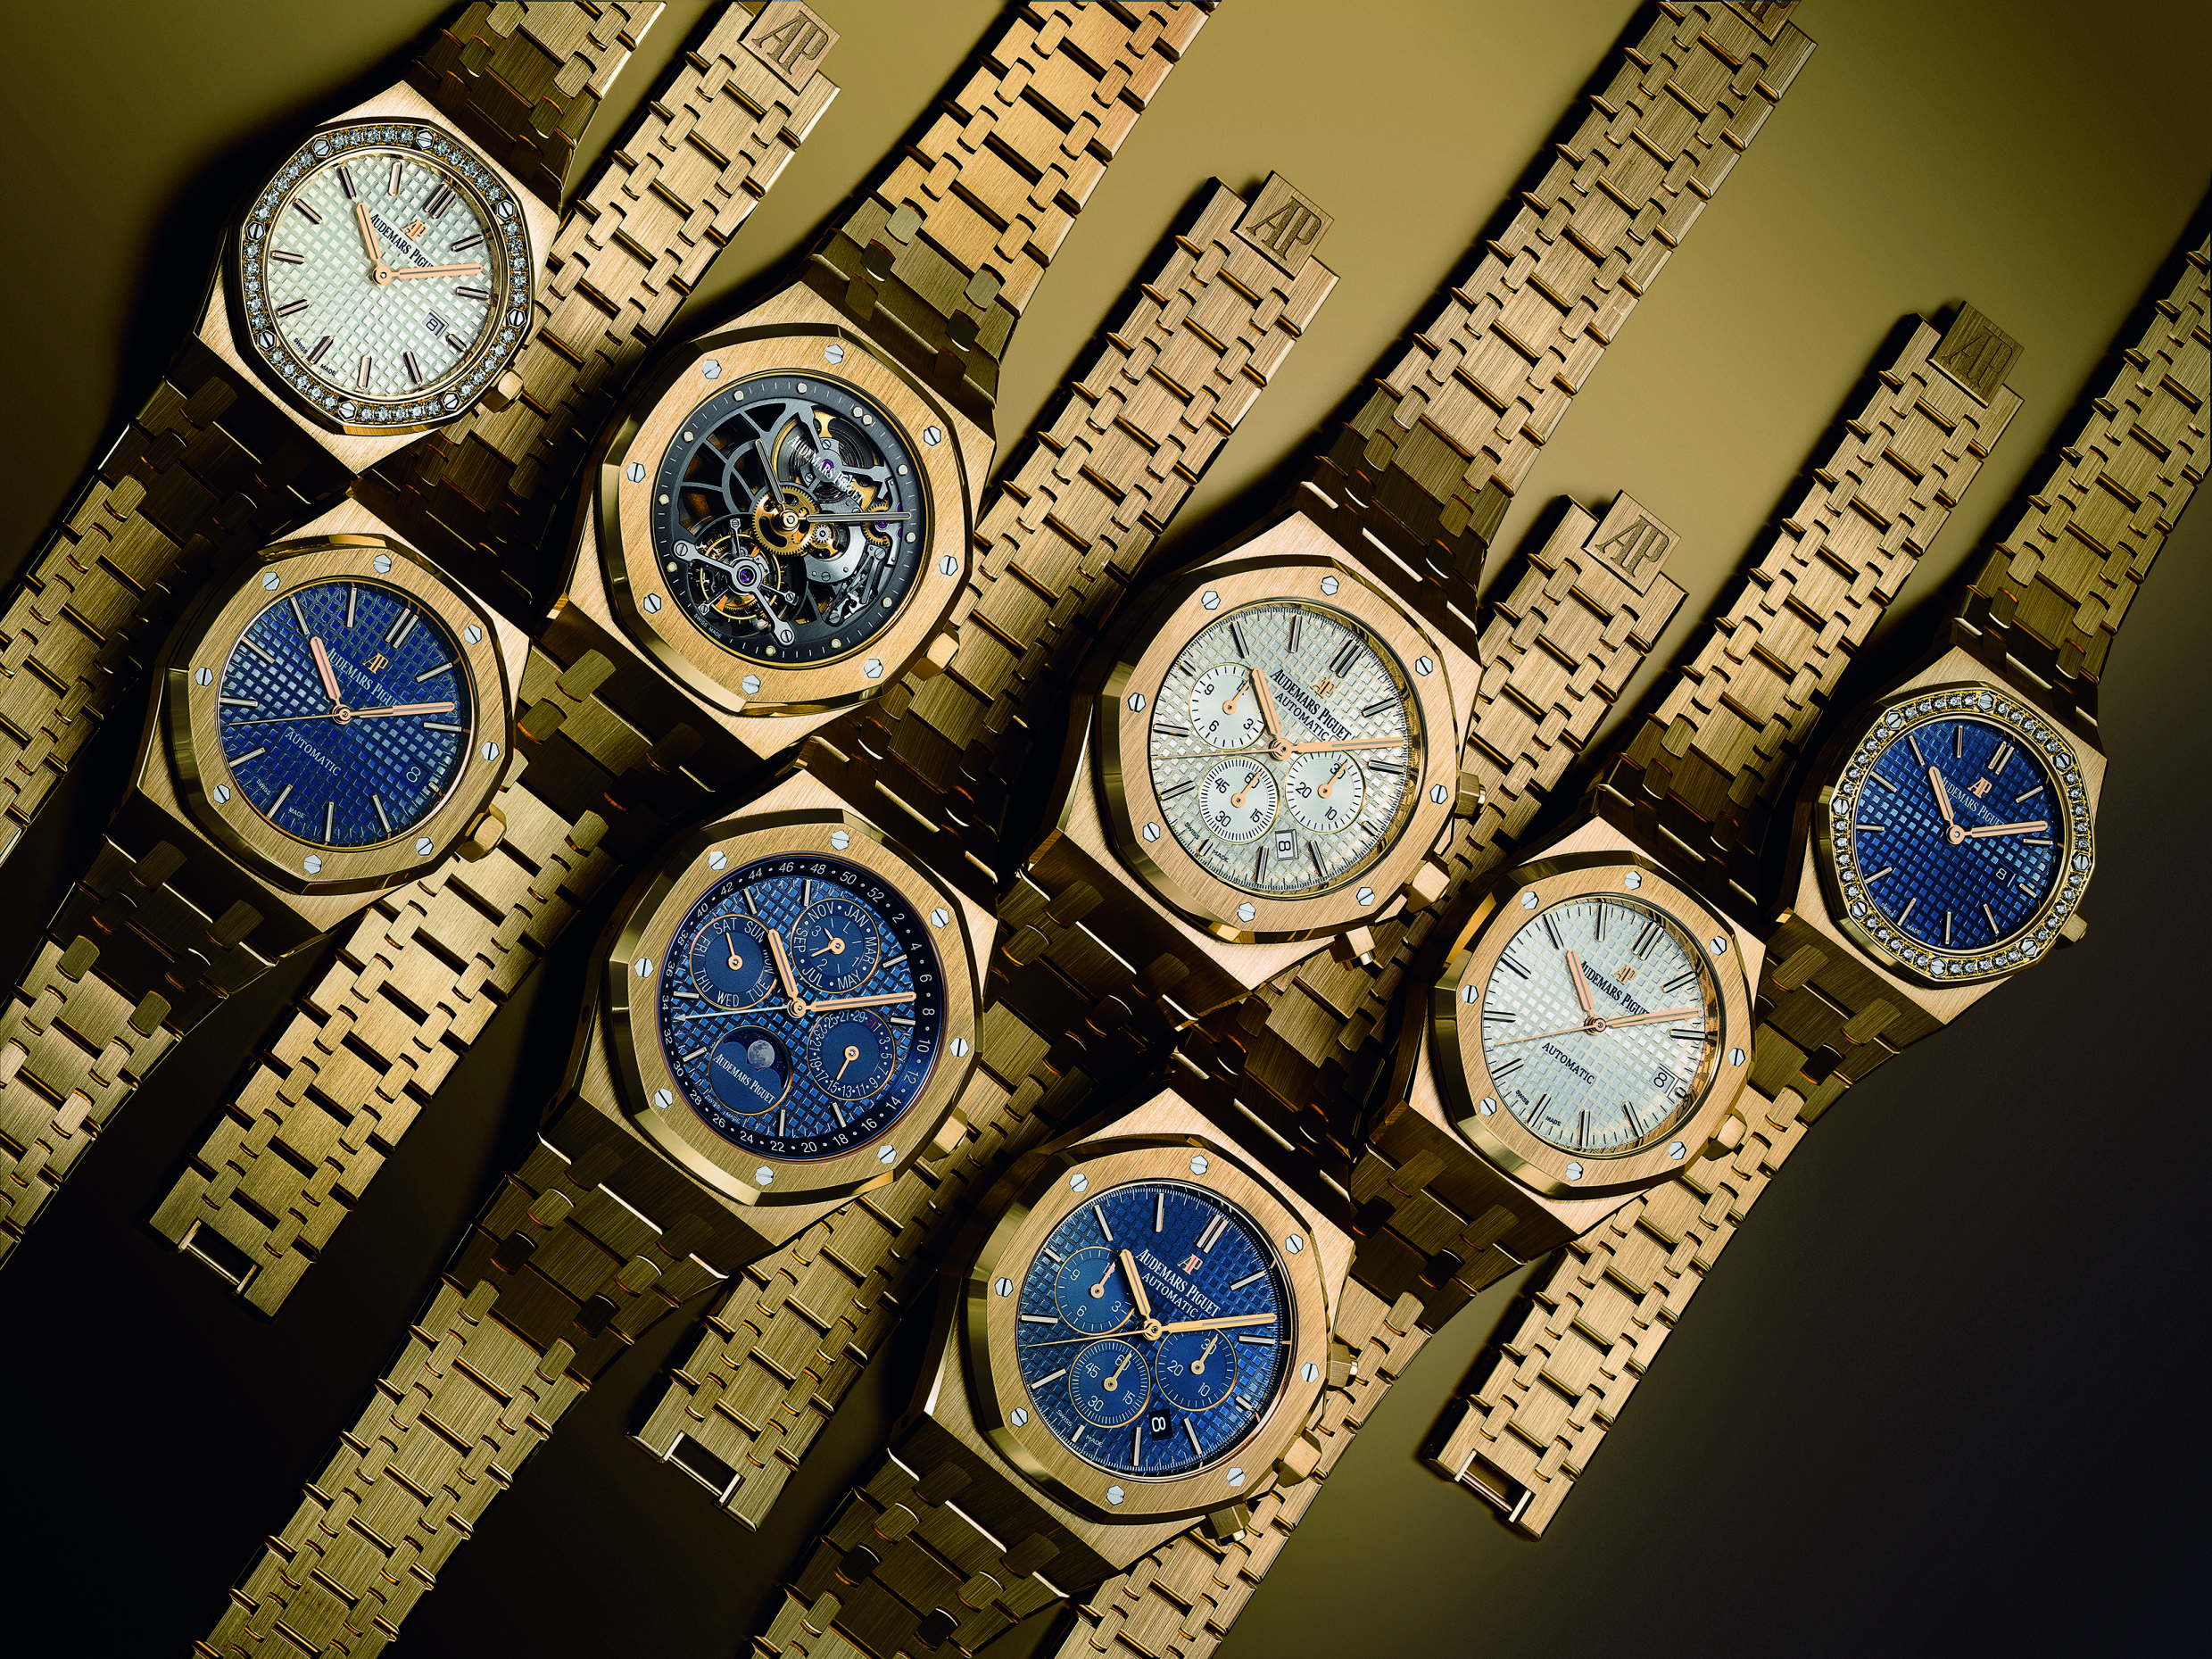 AUDEMARS PIGUET BRINGS BACK YELLOW GOLD AT LAUNCH PARTY AT